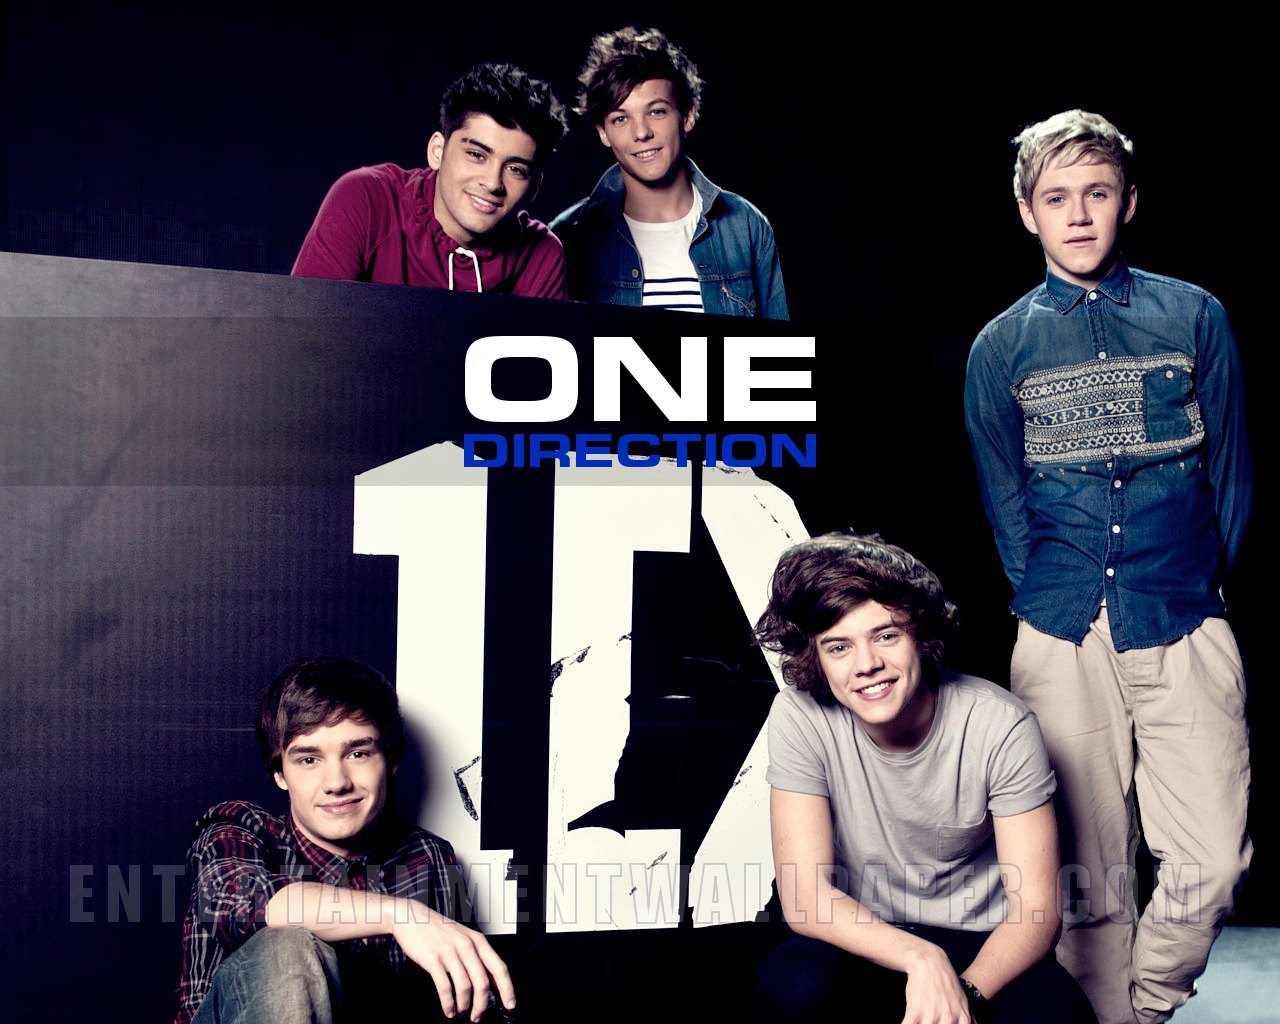 One Direction One Direction Wallpaper by fanpopcom 1280x1024